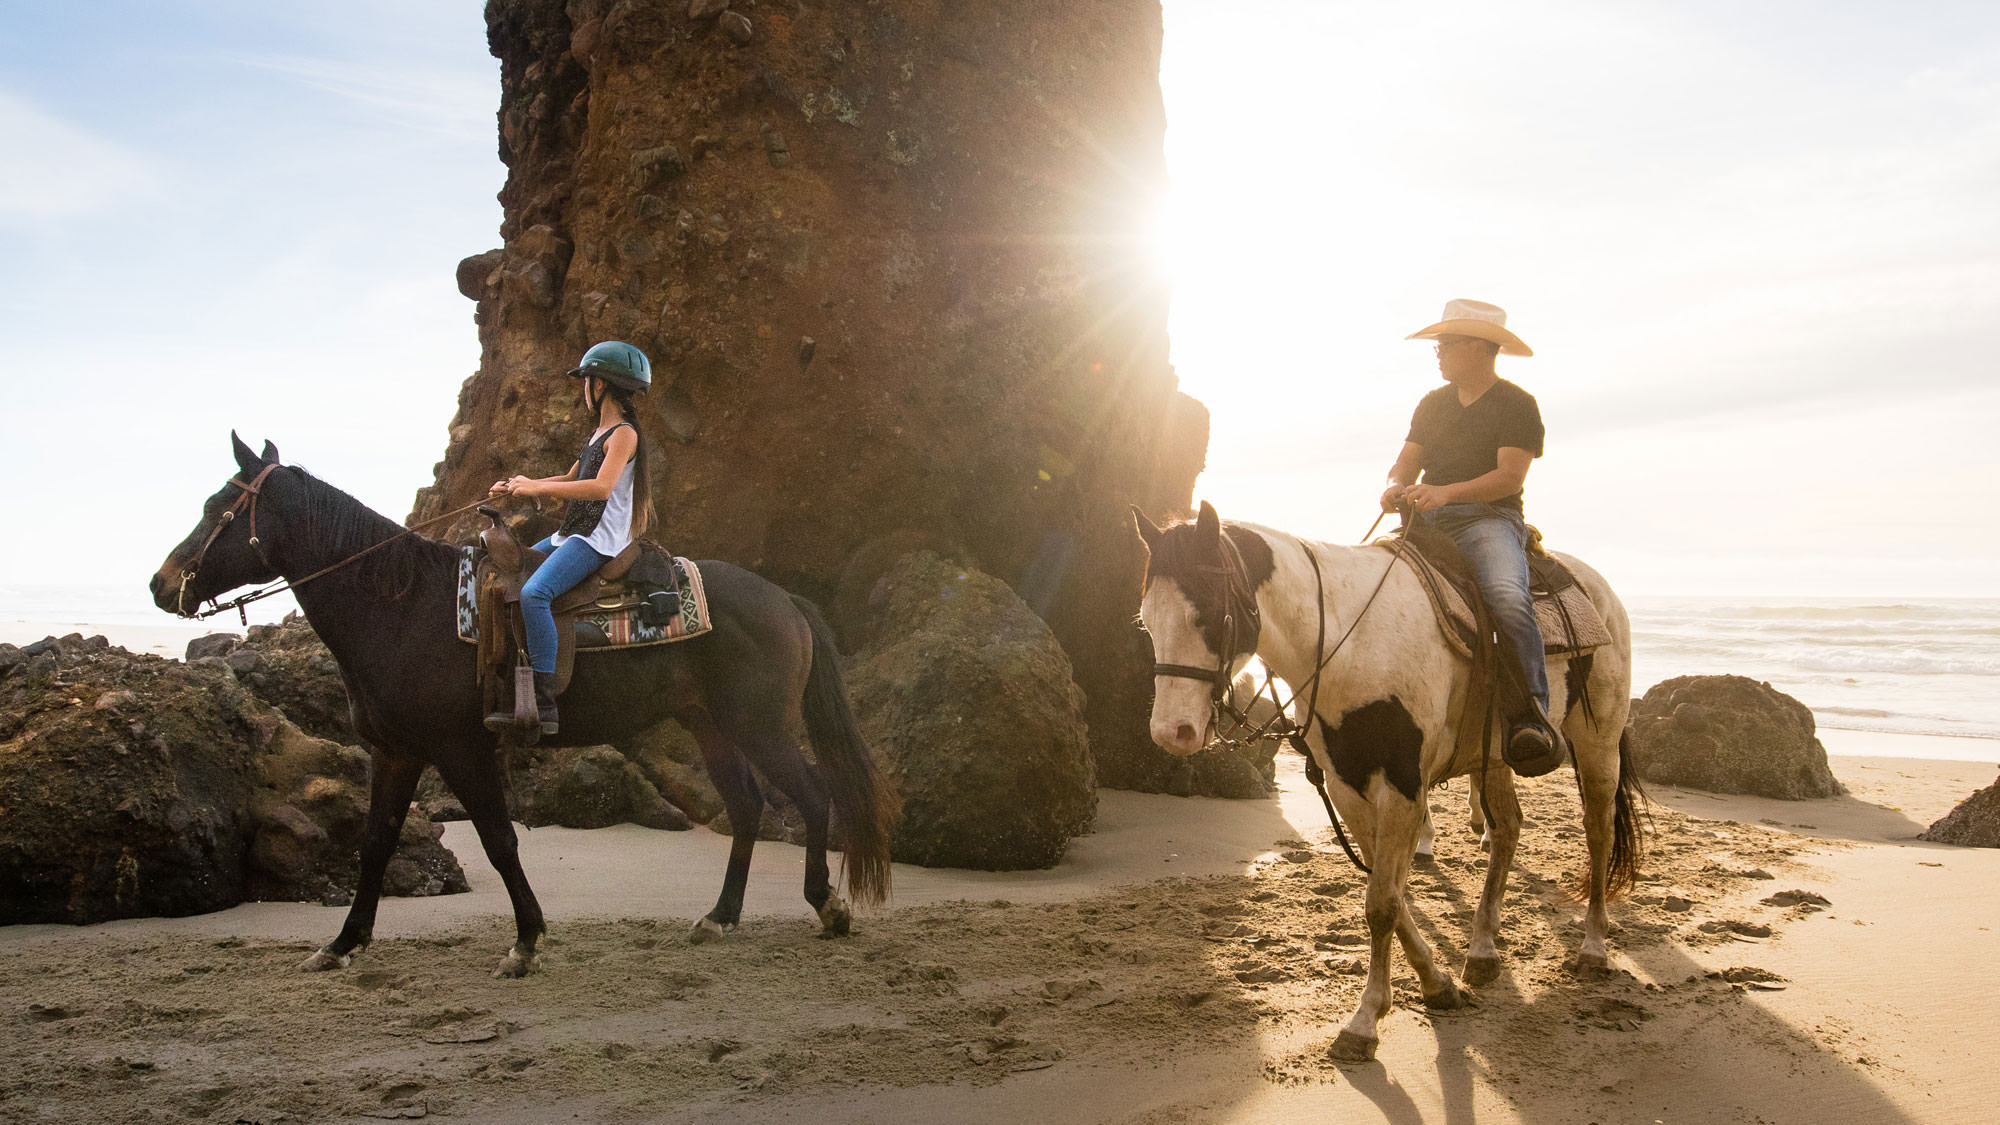 A child and parent ride horses on the beach, with a large sea stack behind them.